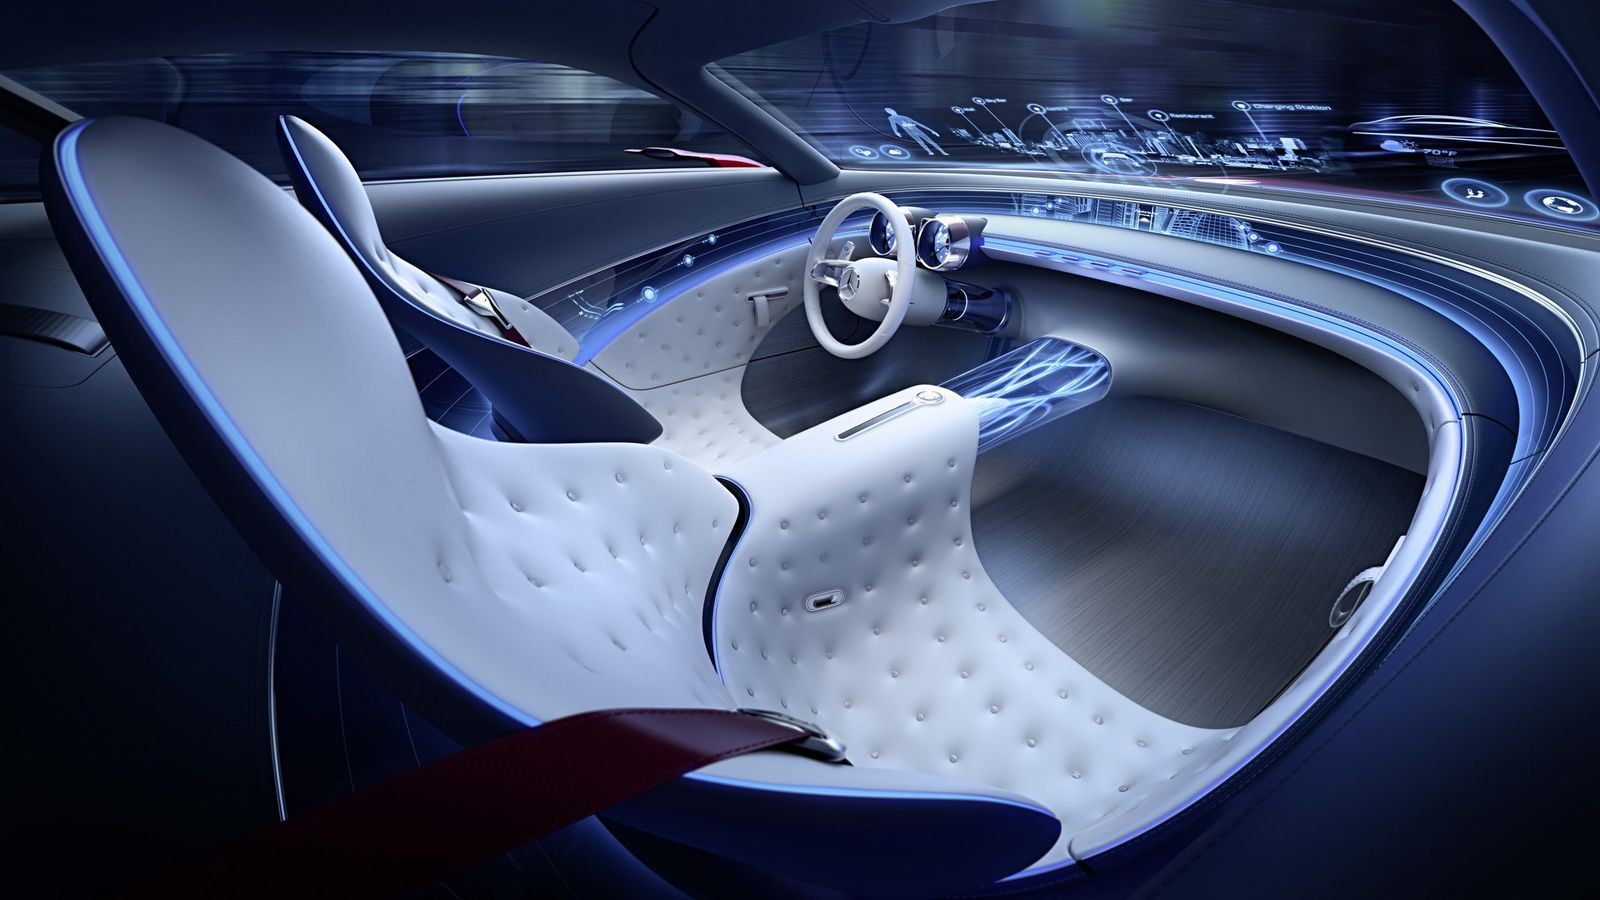 Mercedes Maybach Vision 6 Concept Breaks Cover Mercedes Benz Maybach Mercedes Maybach Concept Car Interior